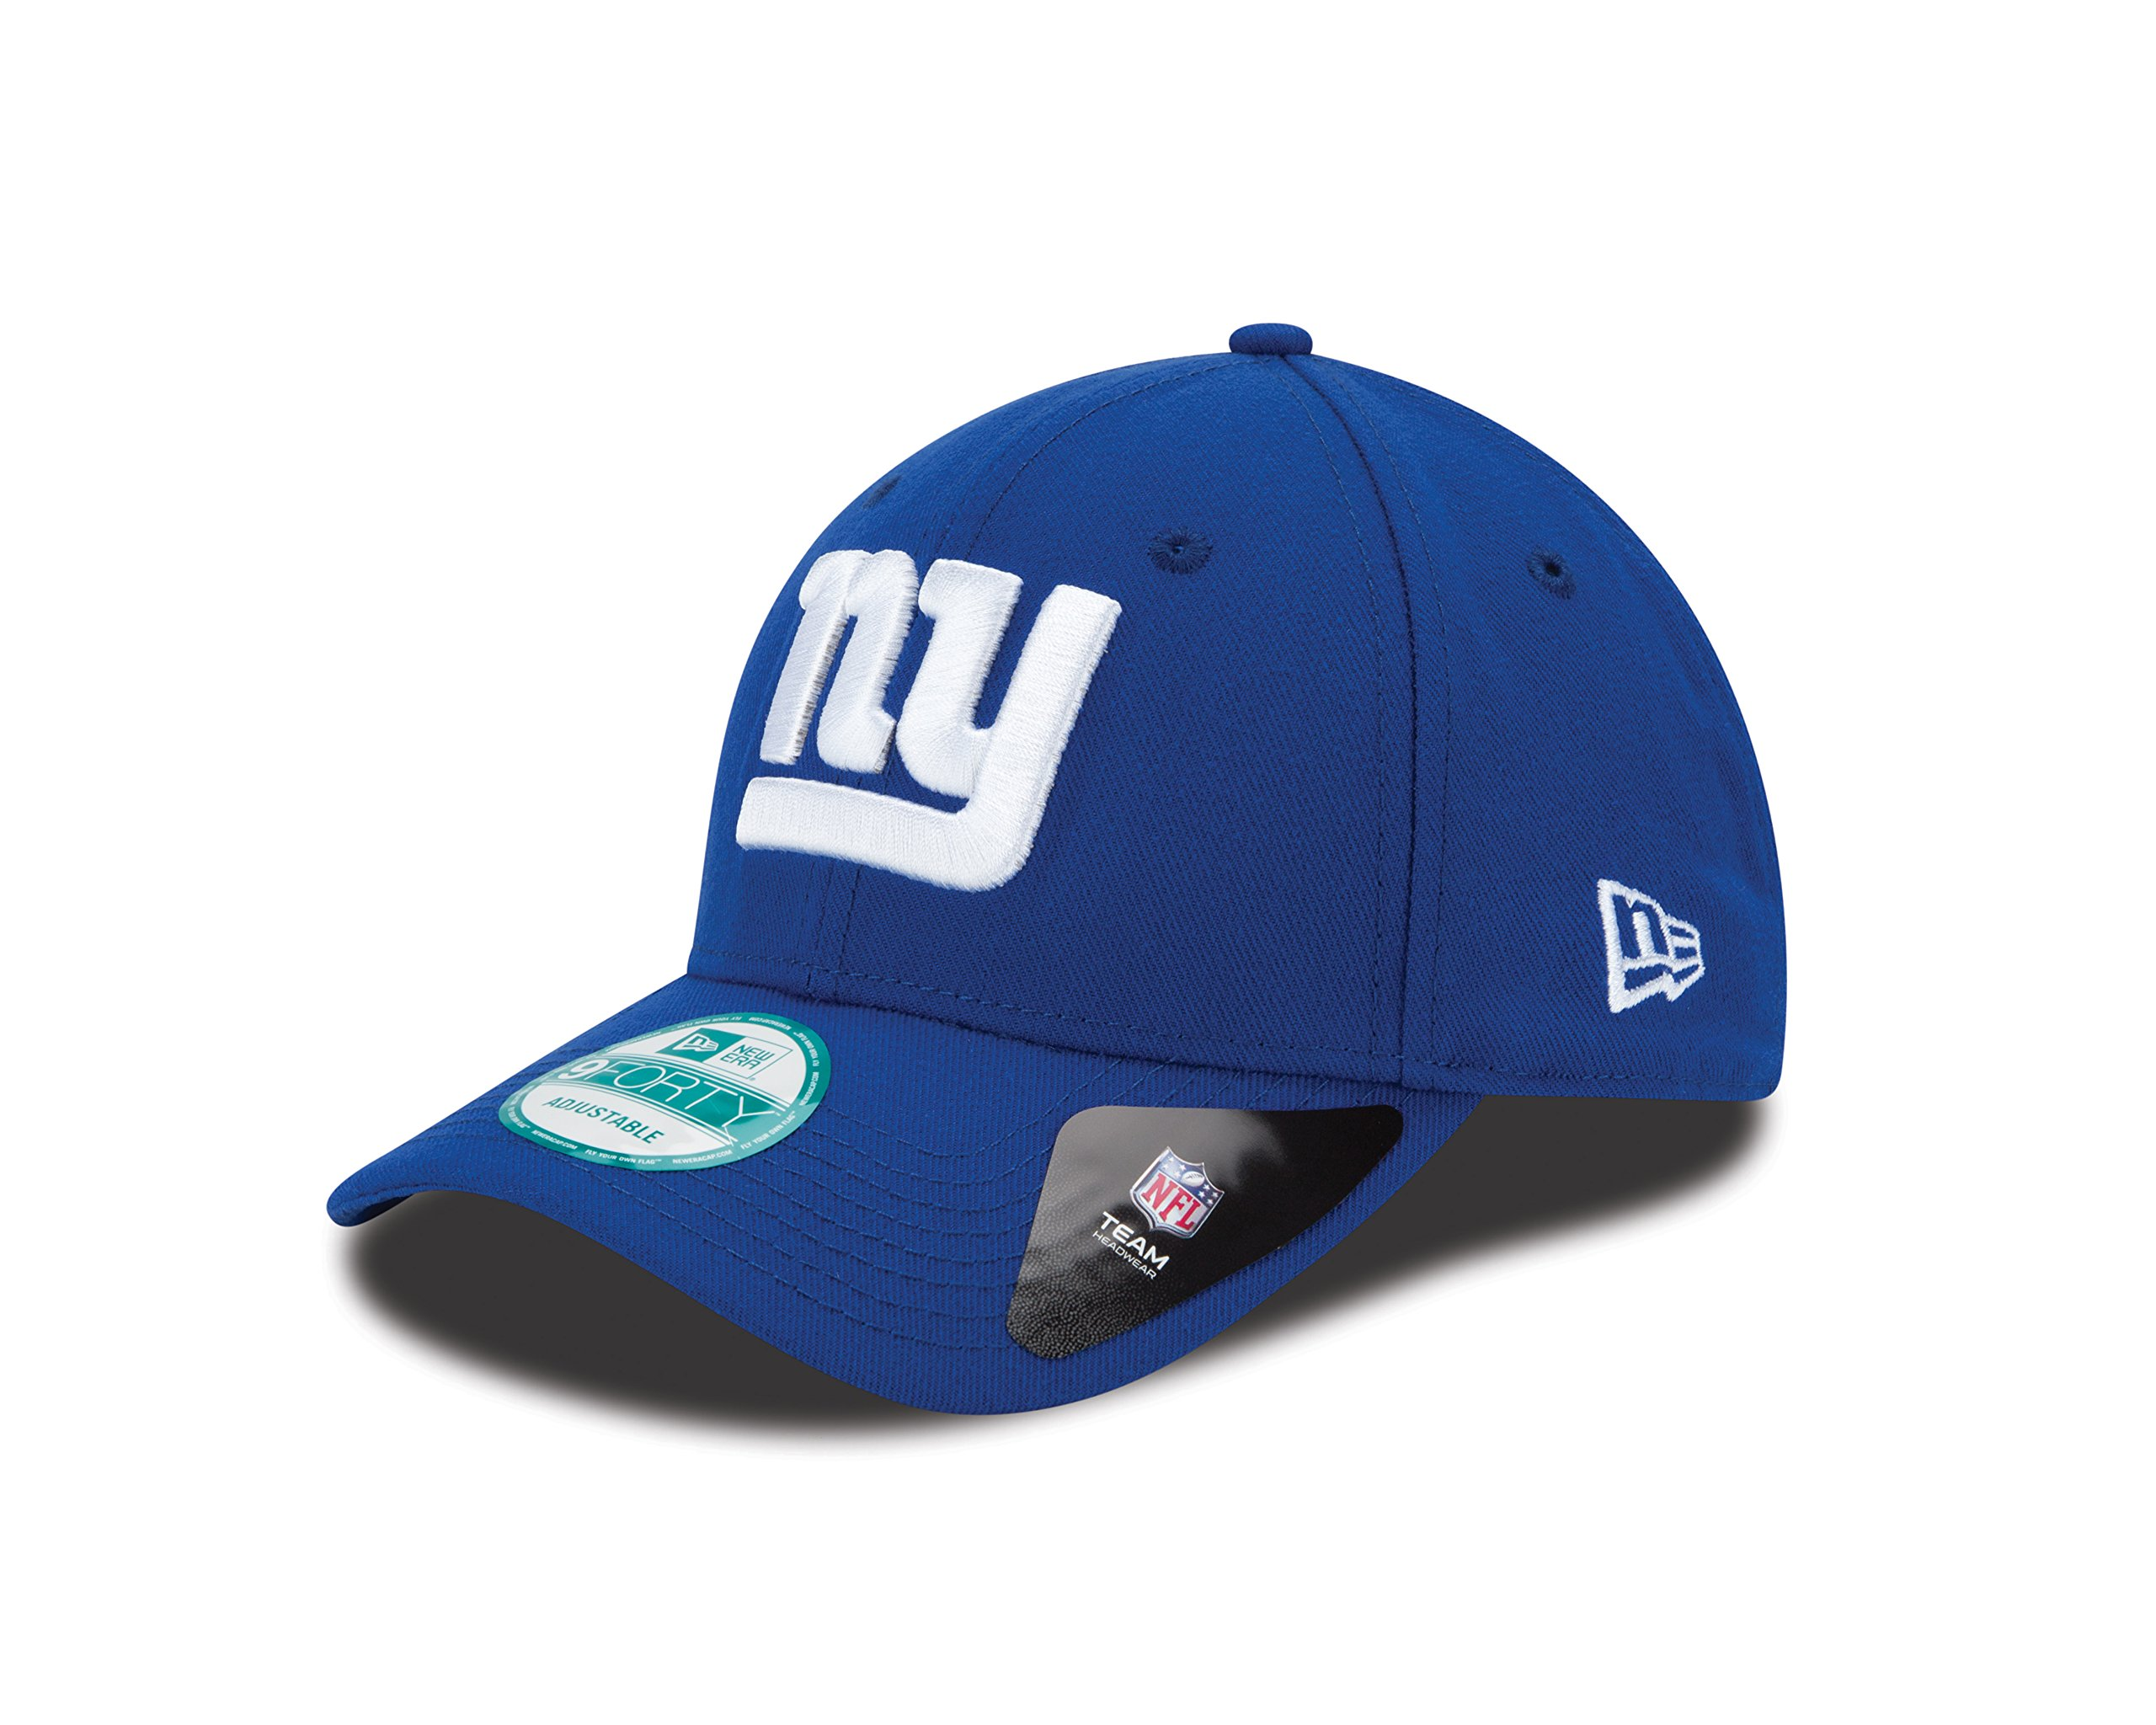 372e10e11868b clearance baseball caps sports outdoors nfl the league new york giants  9forty adjustable cap product image